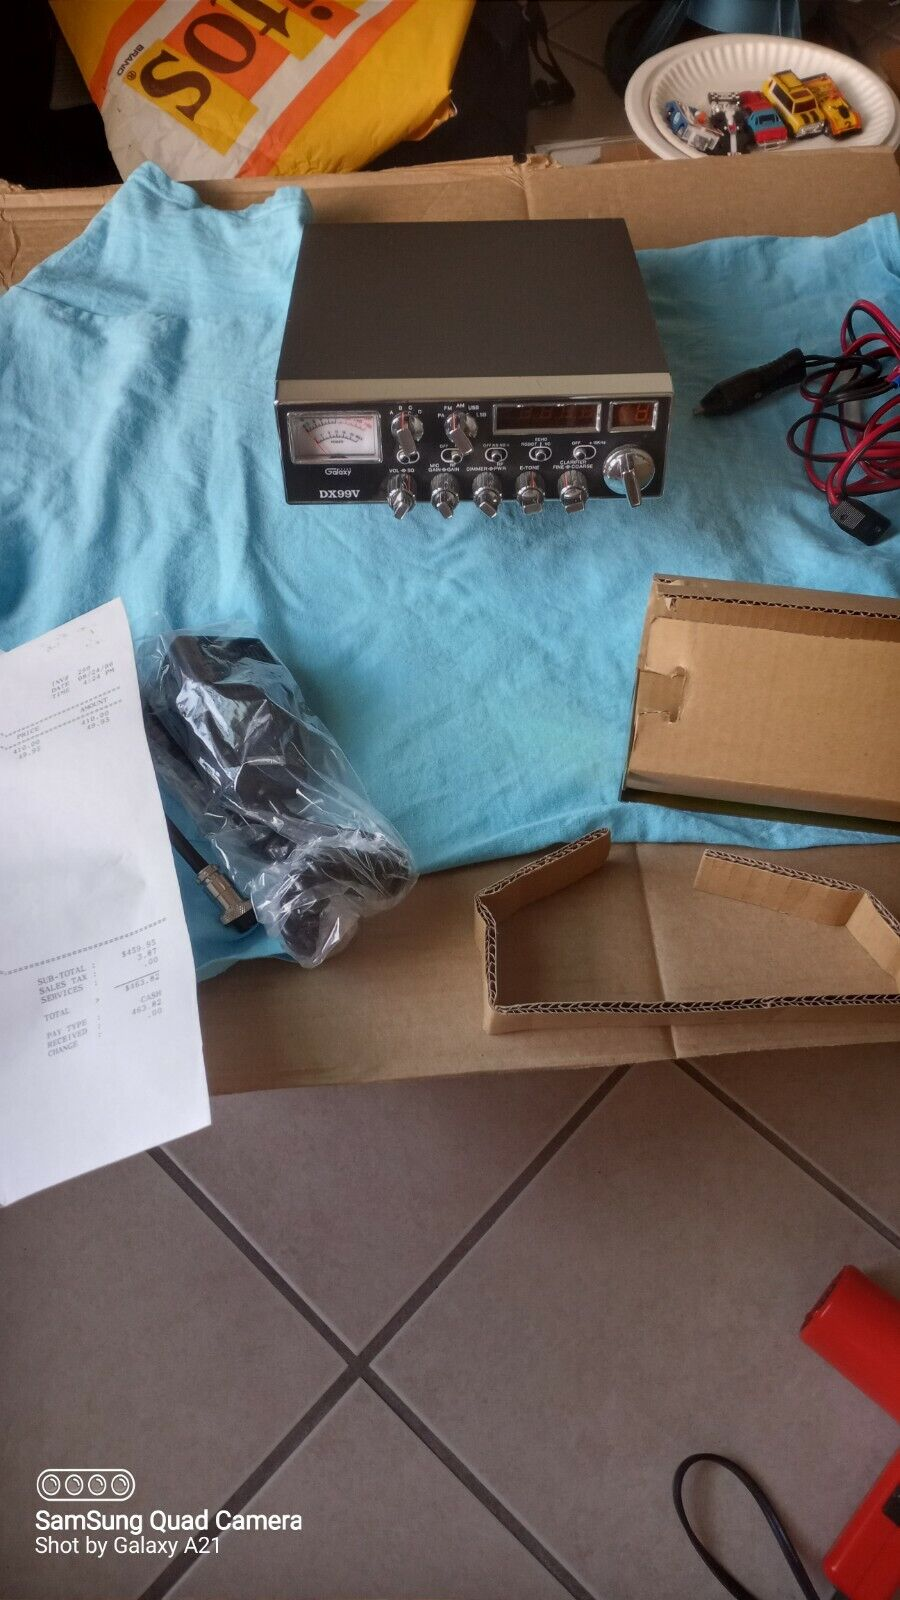 Rare Galaxy DX99V AM/FM SSB all mode cb radio echo been robot microphone + box. Buy it now for 495.00